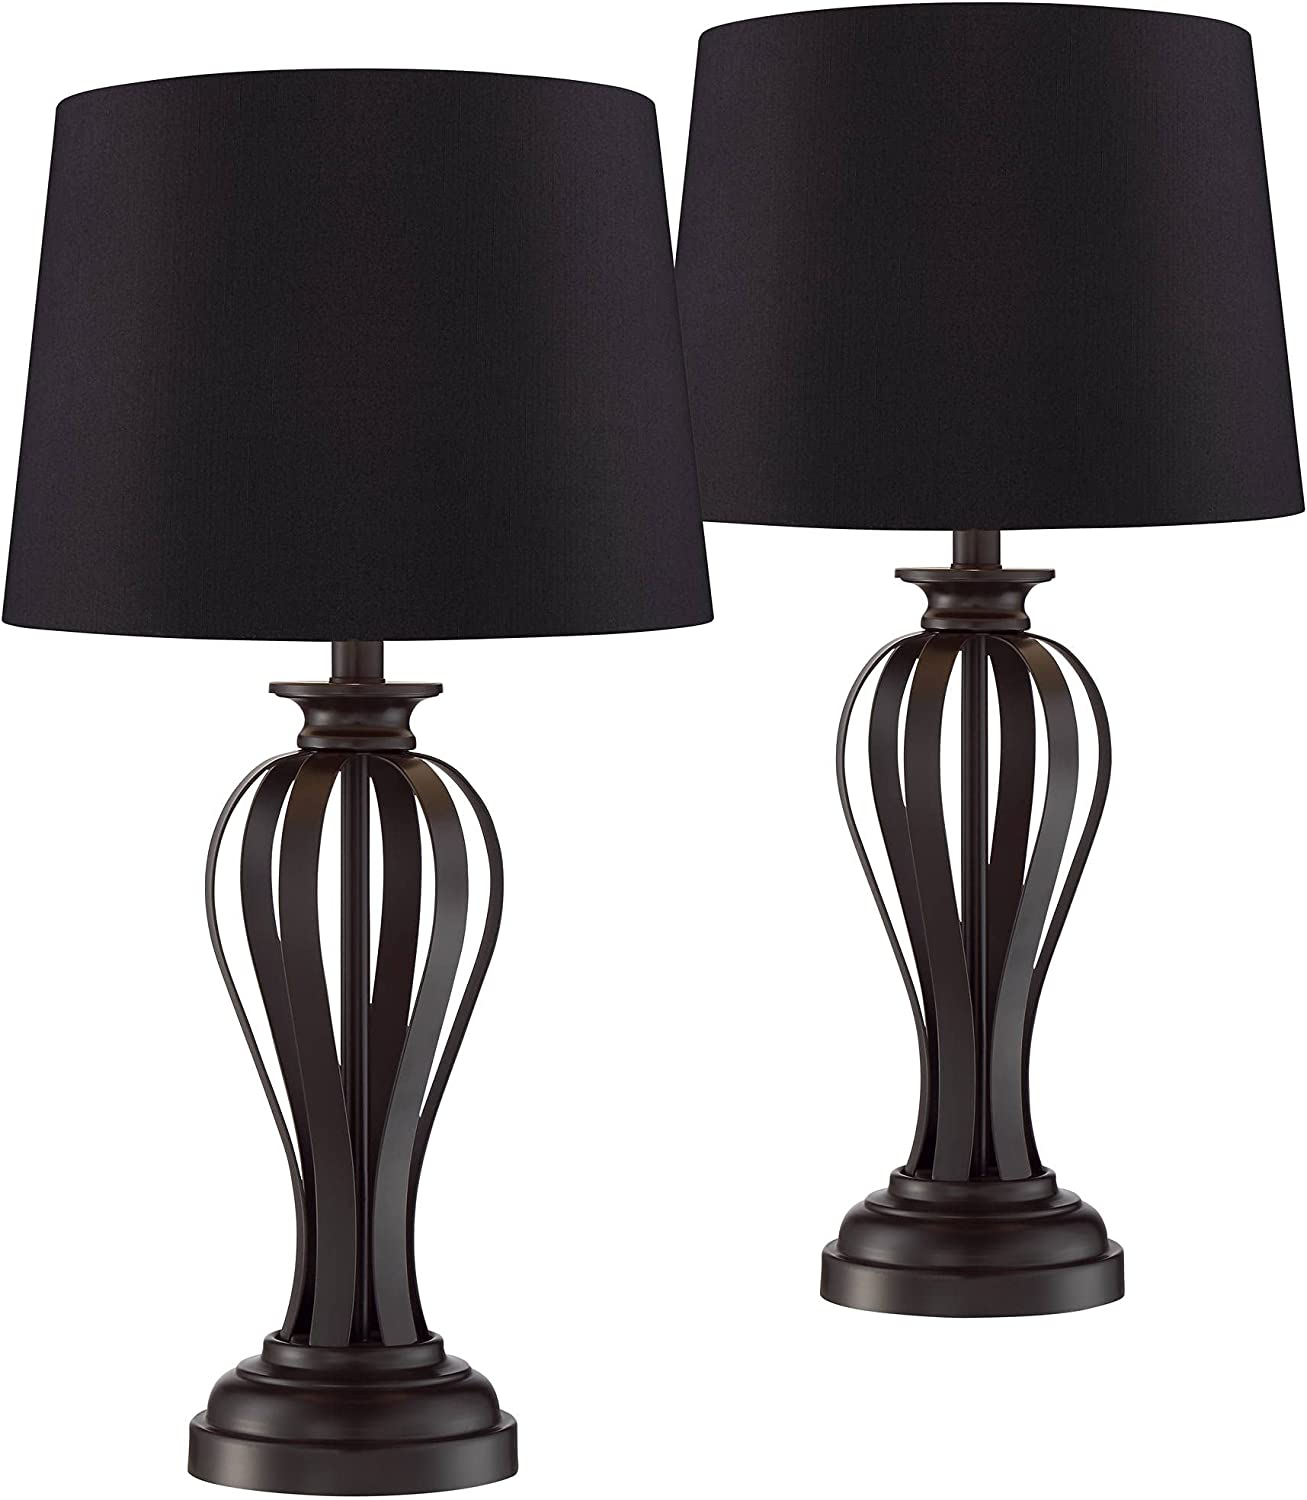 Freddie Mid Century Modern Contemporary New Shipping Free Shipping Table Lamps In a popularity Set Bro of 2